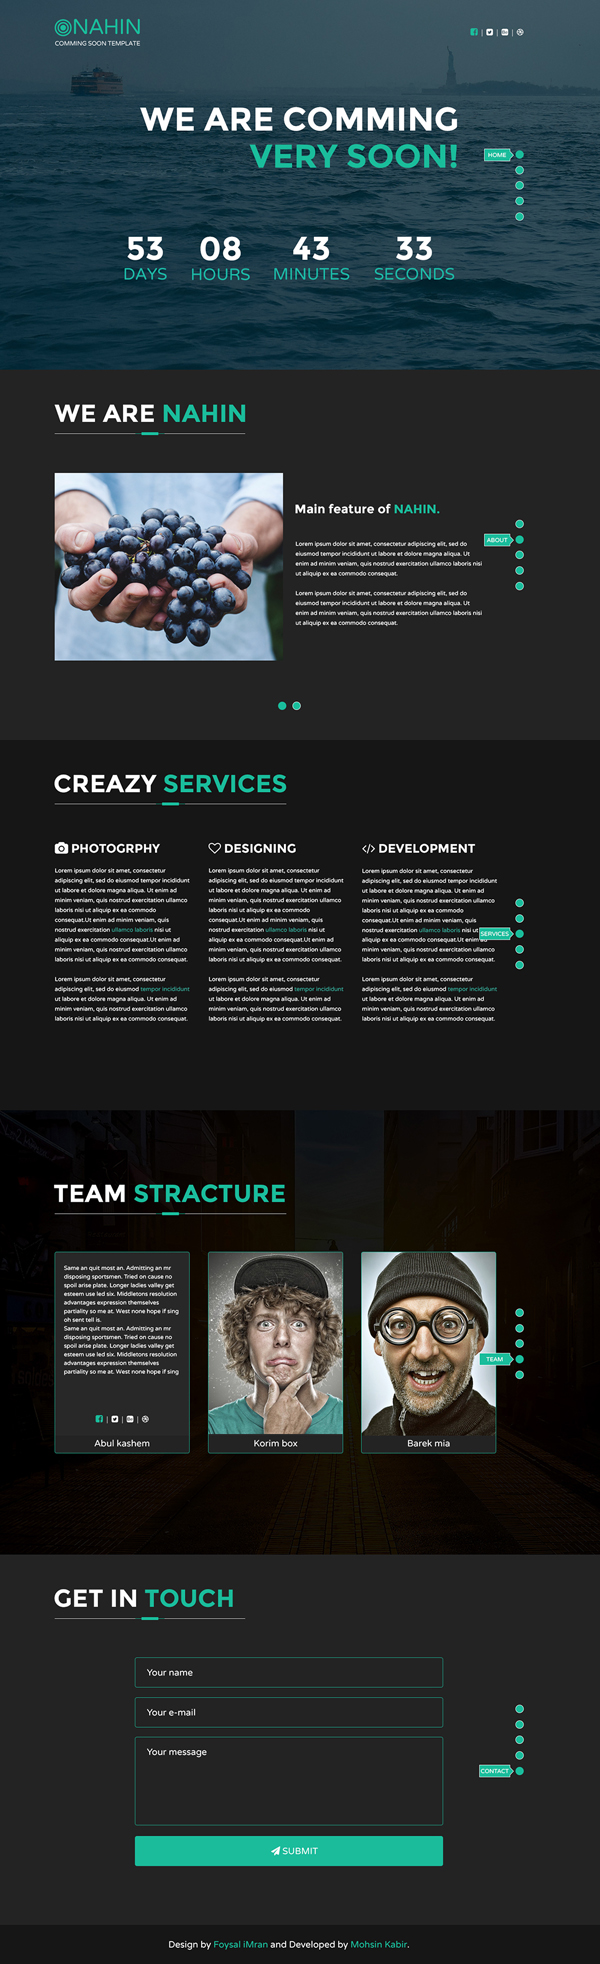 Free Comming Soon Landing Page PSD Template